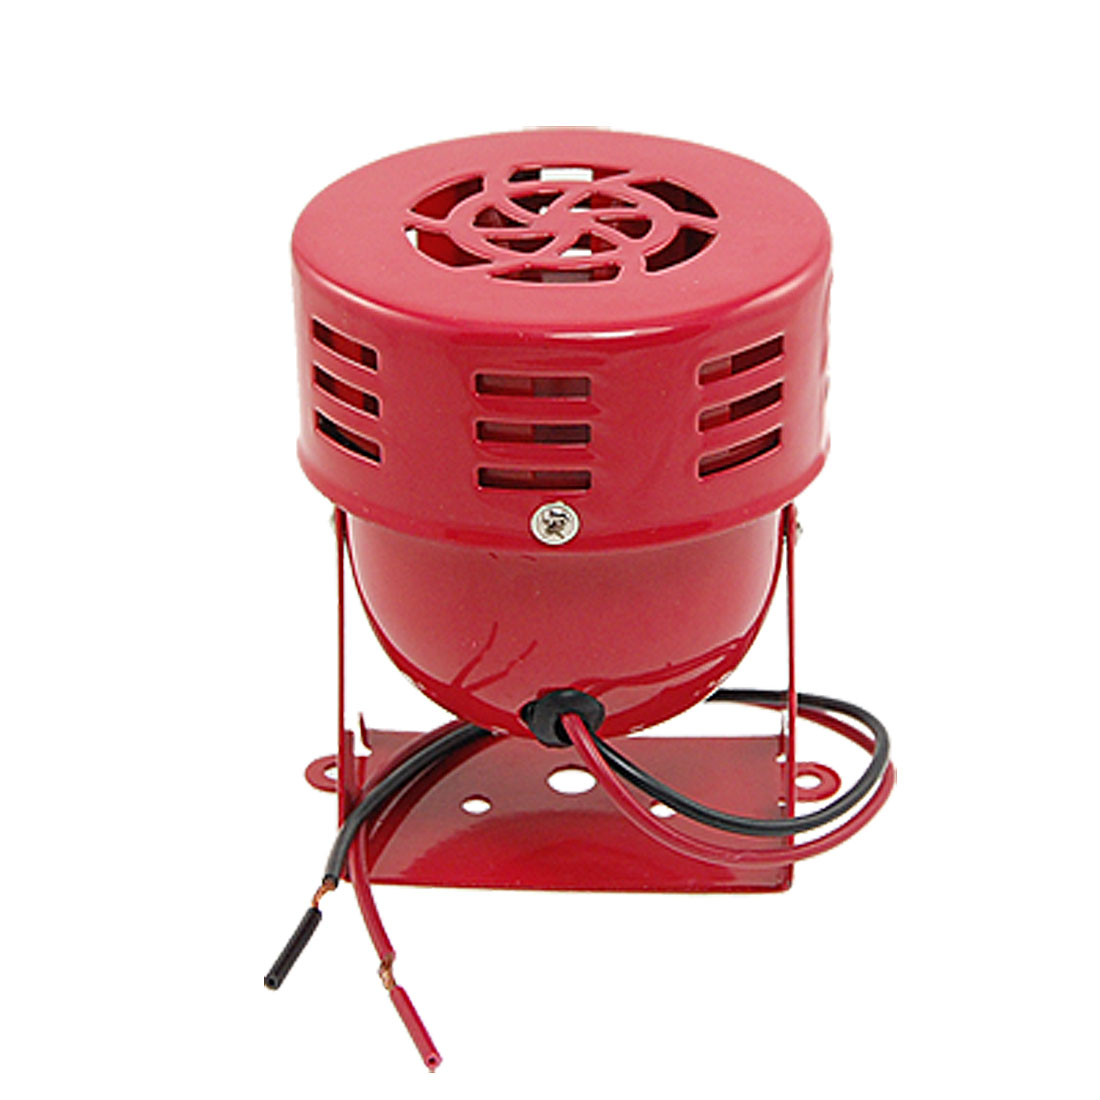 MS-190 DC 24V Metal Red Housing Security System Mini Horn Motor Siren